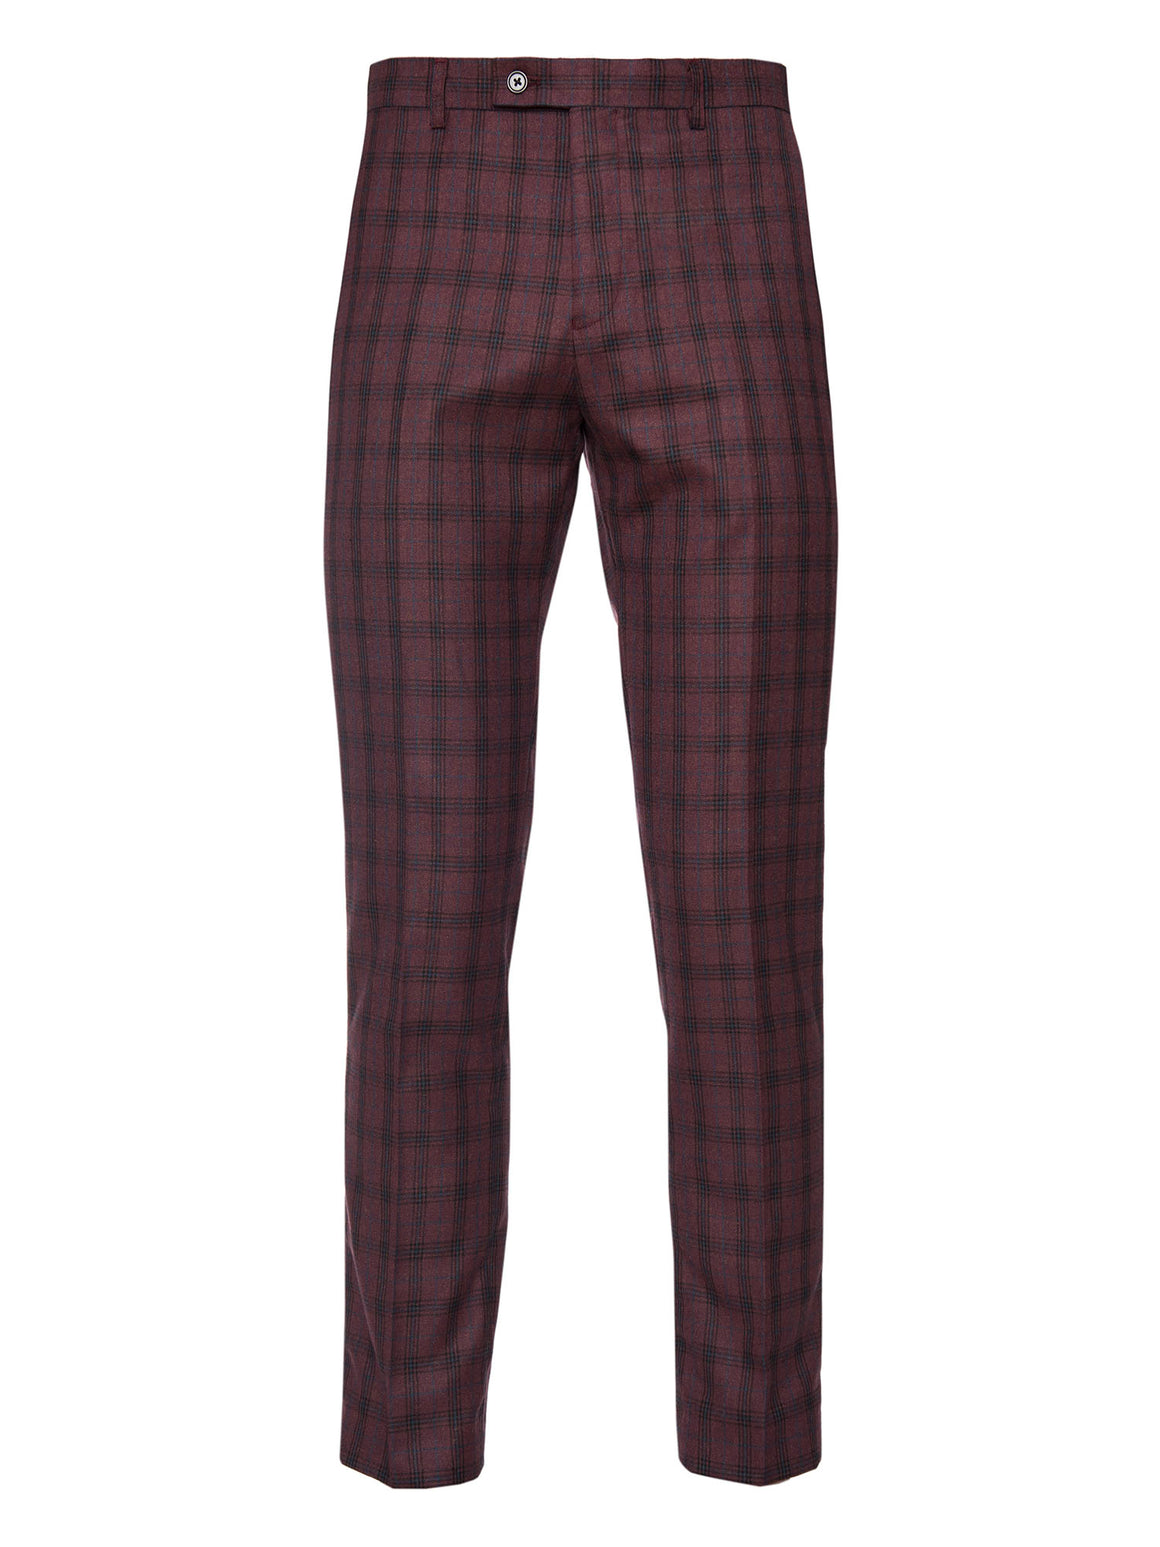 Downing Pant - Dark Berry Plaid